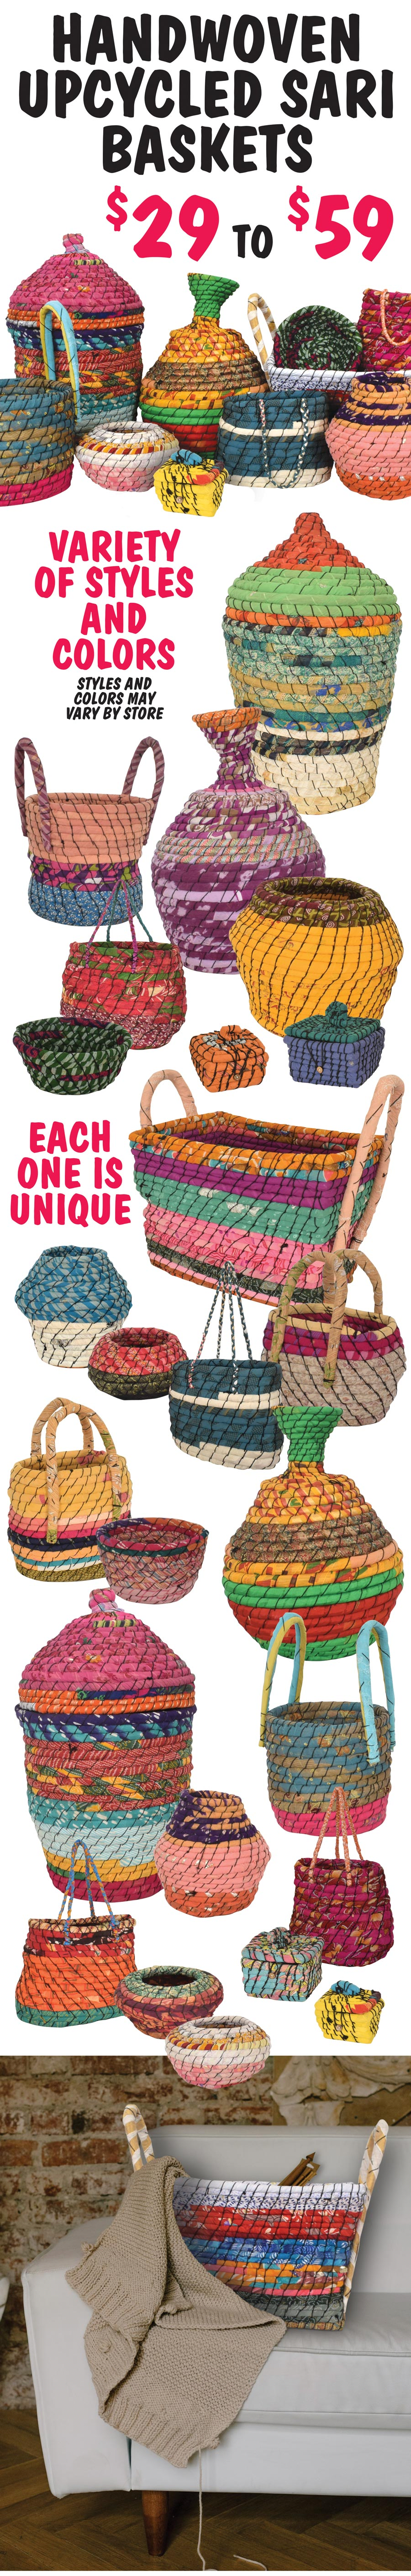 Handwoven Upcycled Sari Baskets $29 to $59 - variety of styles and colors. Handmade in India from Sarkanda Grass, also known as Sweet Cane of Haryan, and reclaimed cloth from old Saris collected from around the region. Every basket is unique. Click here the read our blog about how they are made.